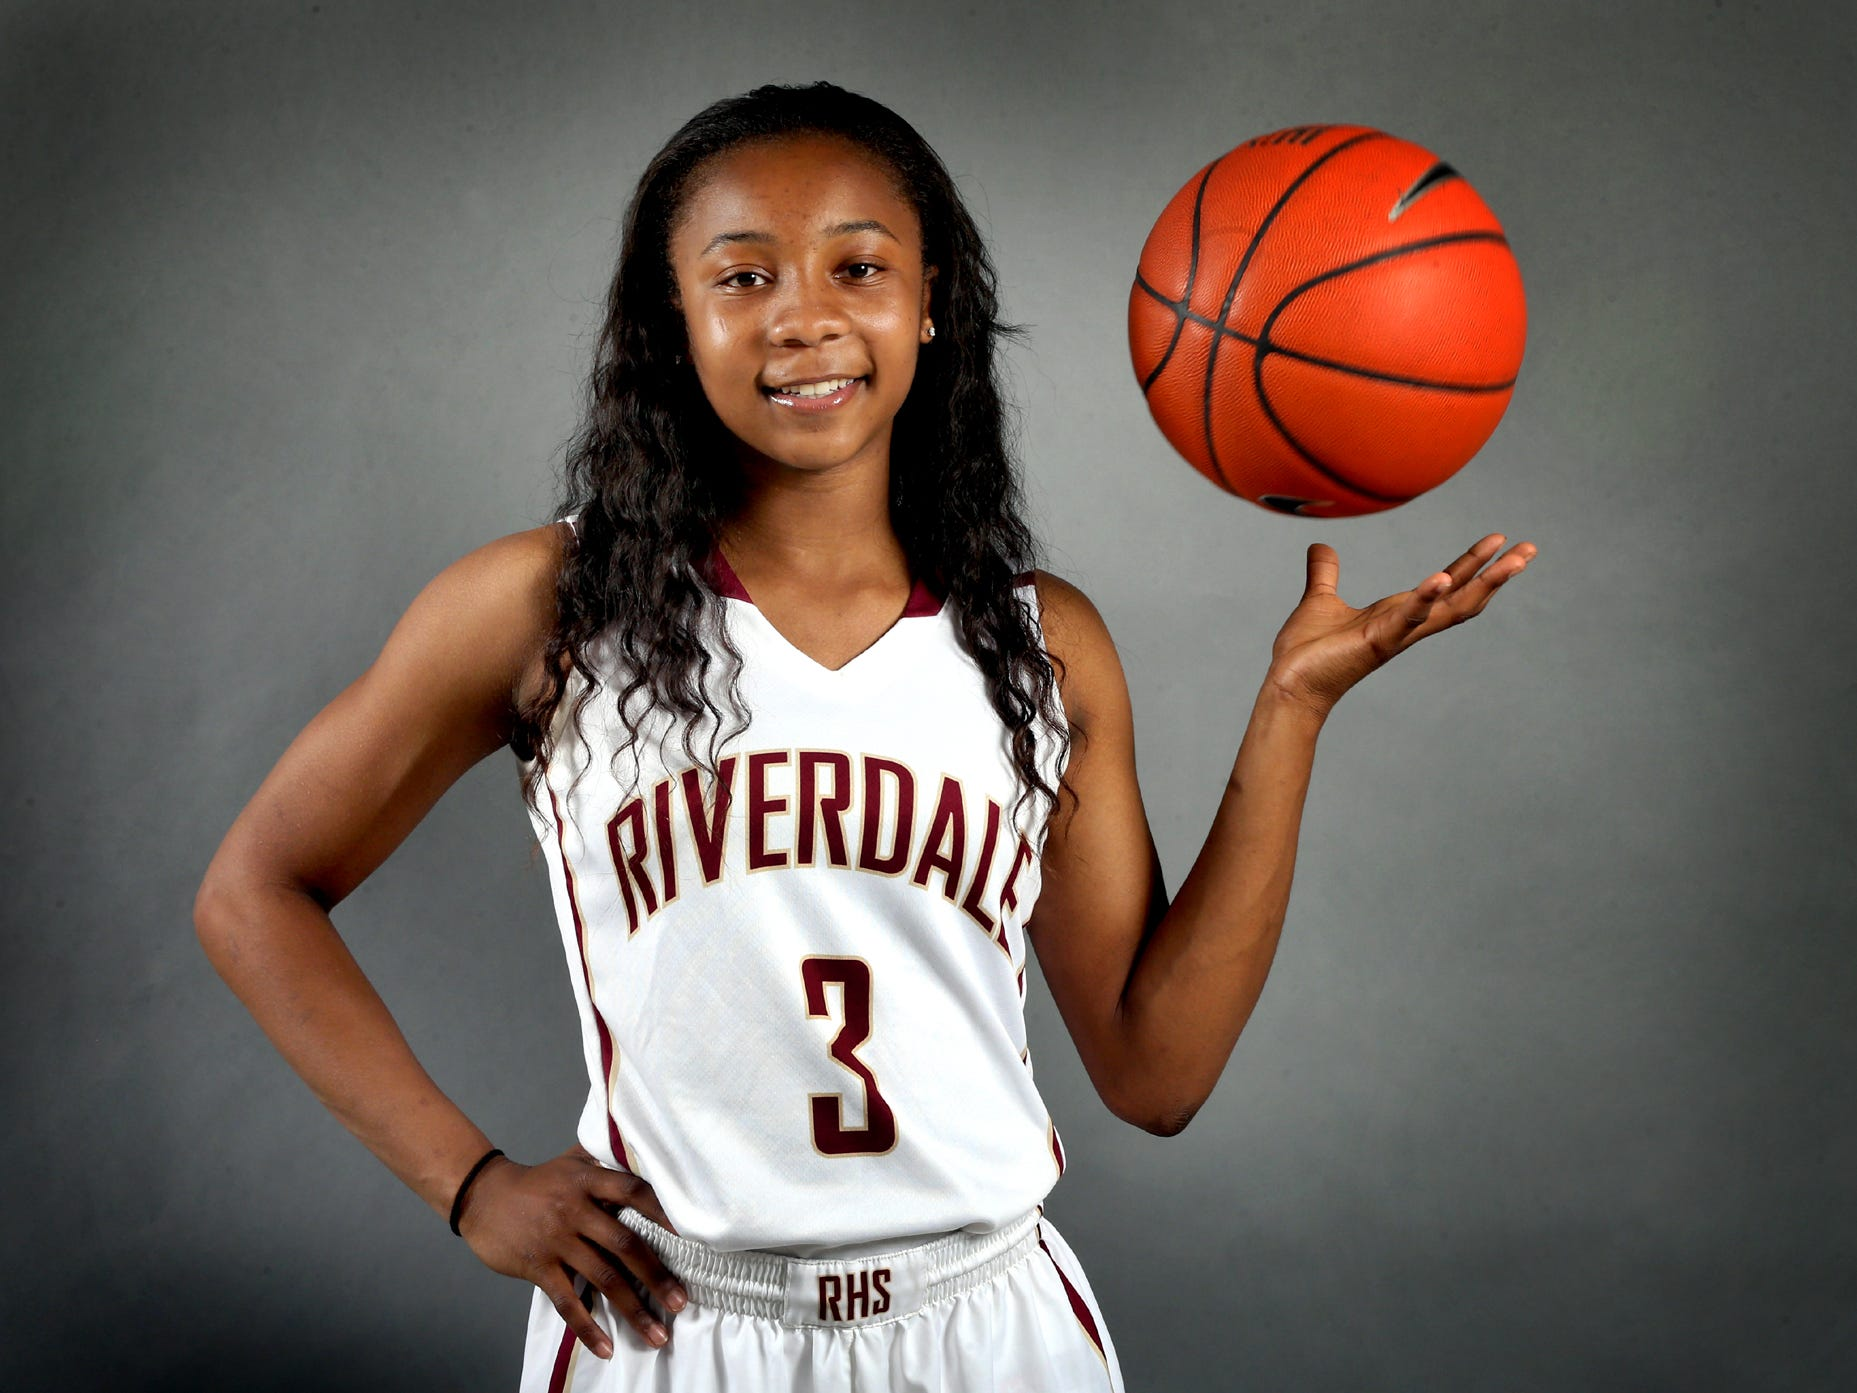 Anastasia Hayes is one of the players on the all-area girls basketball team. Photo shot in the studio on April 9, 2015.